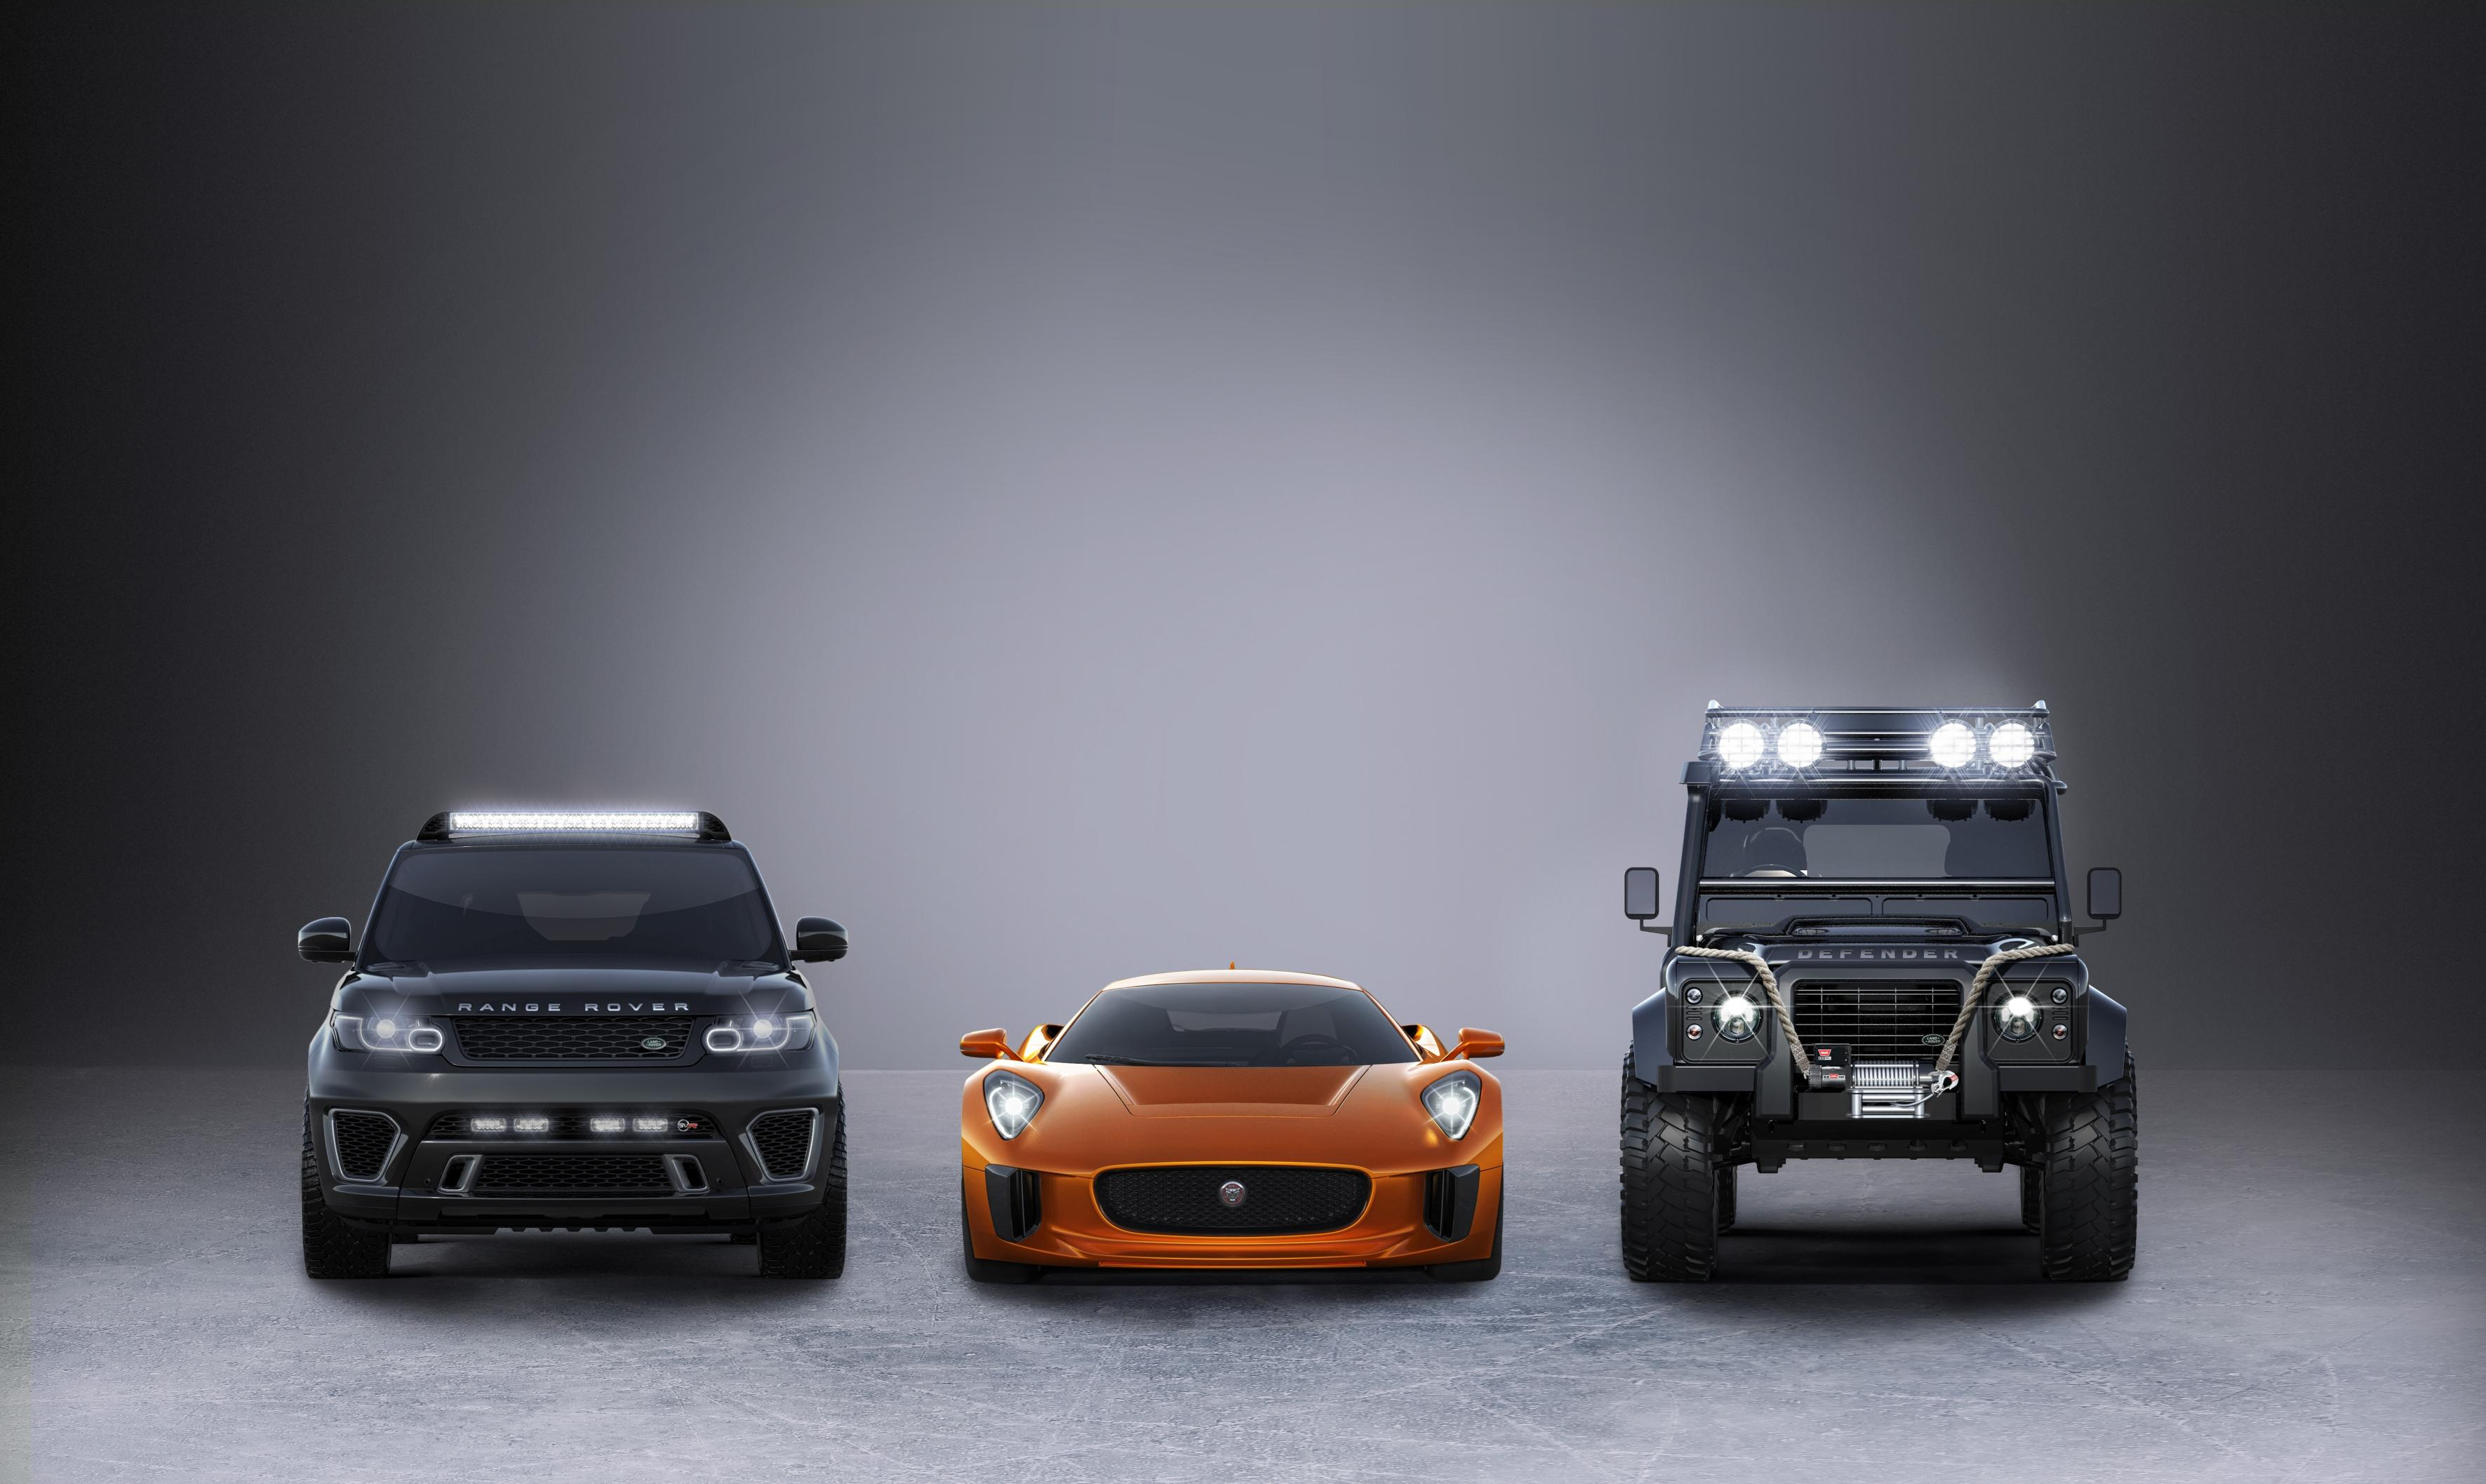 https://s1.cdn.autoevolution.com/images/news/heres-what-jaguar-and-land-rover-are-bringing-for-spectre-92079_1.jpg